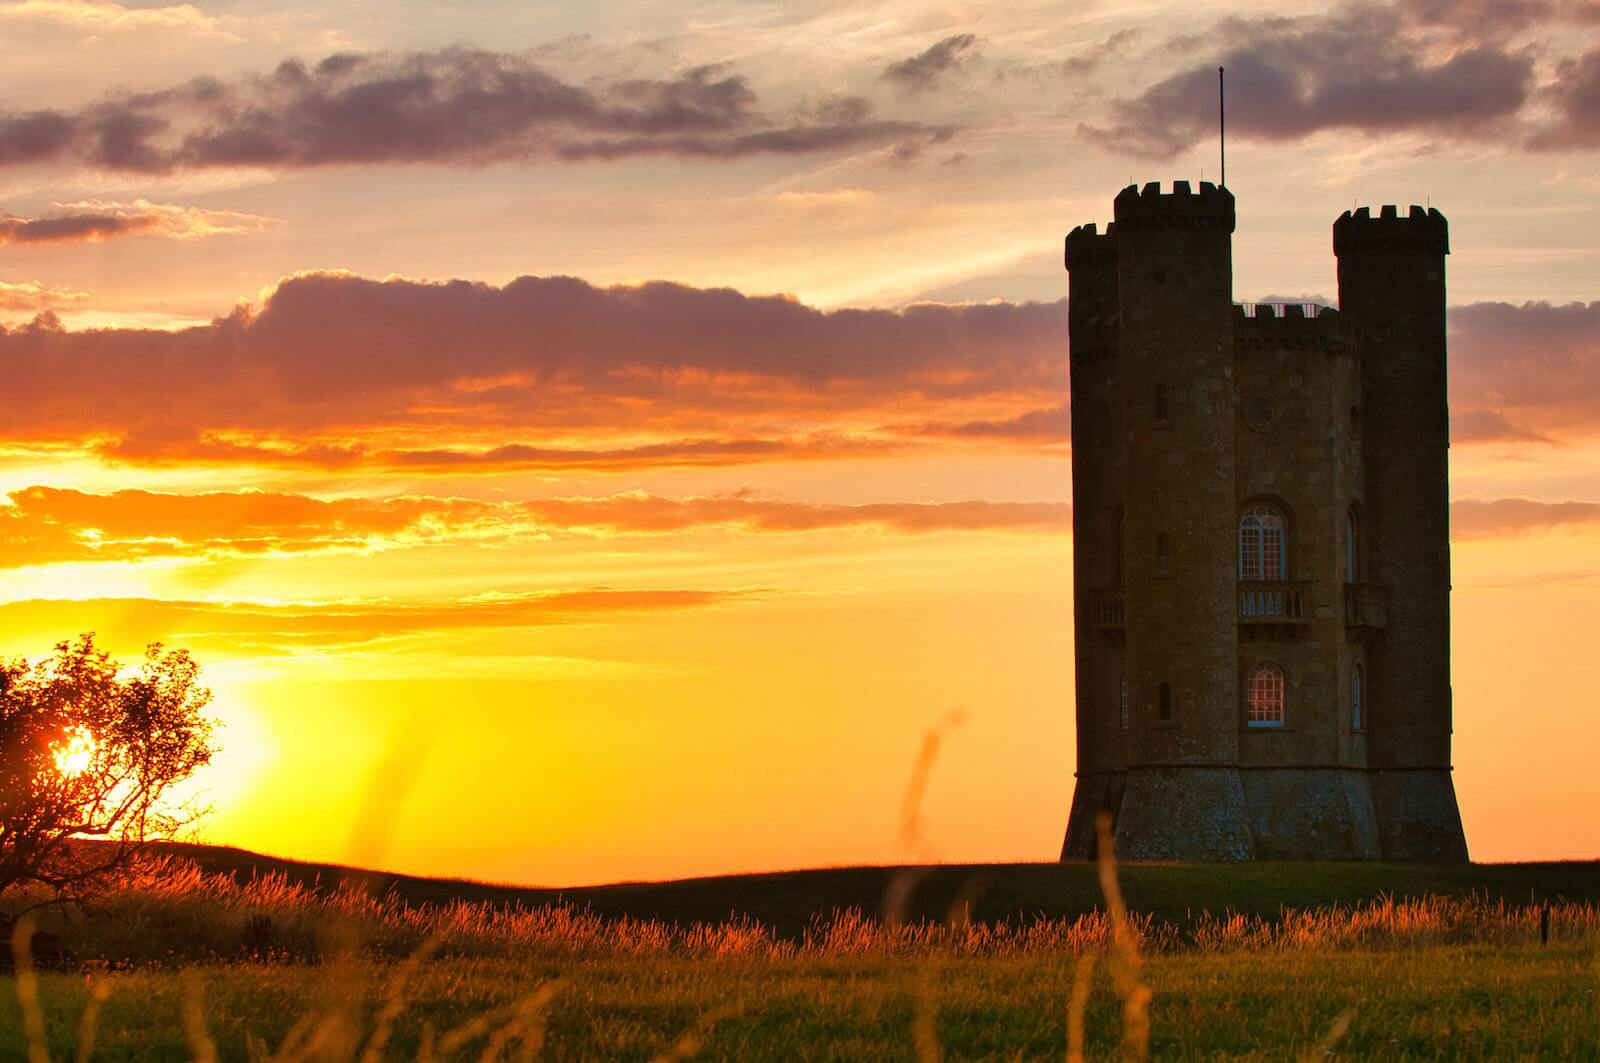 Midlands Cotswolds Sehenswürdigkeiten: Broadway Tower Cotswolds bei Sonnenuntergang